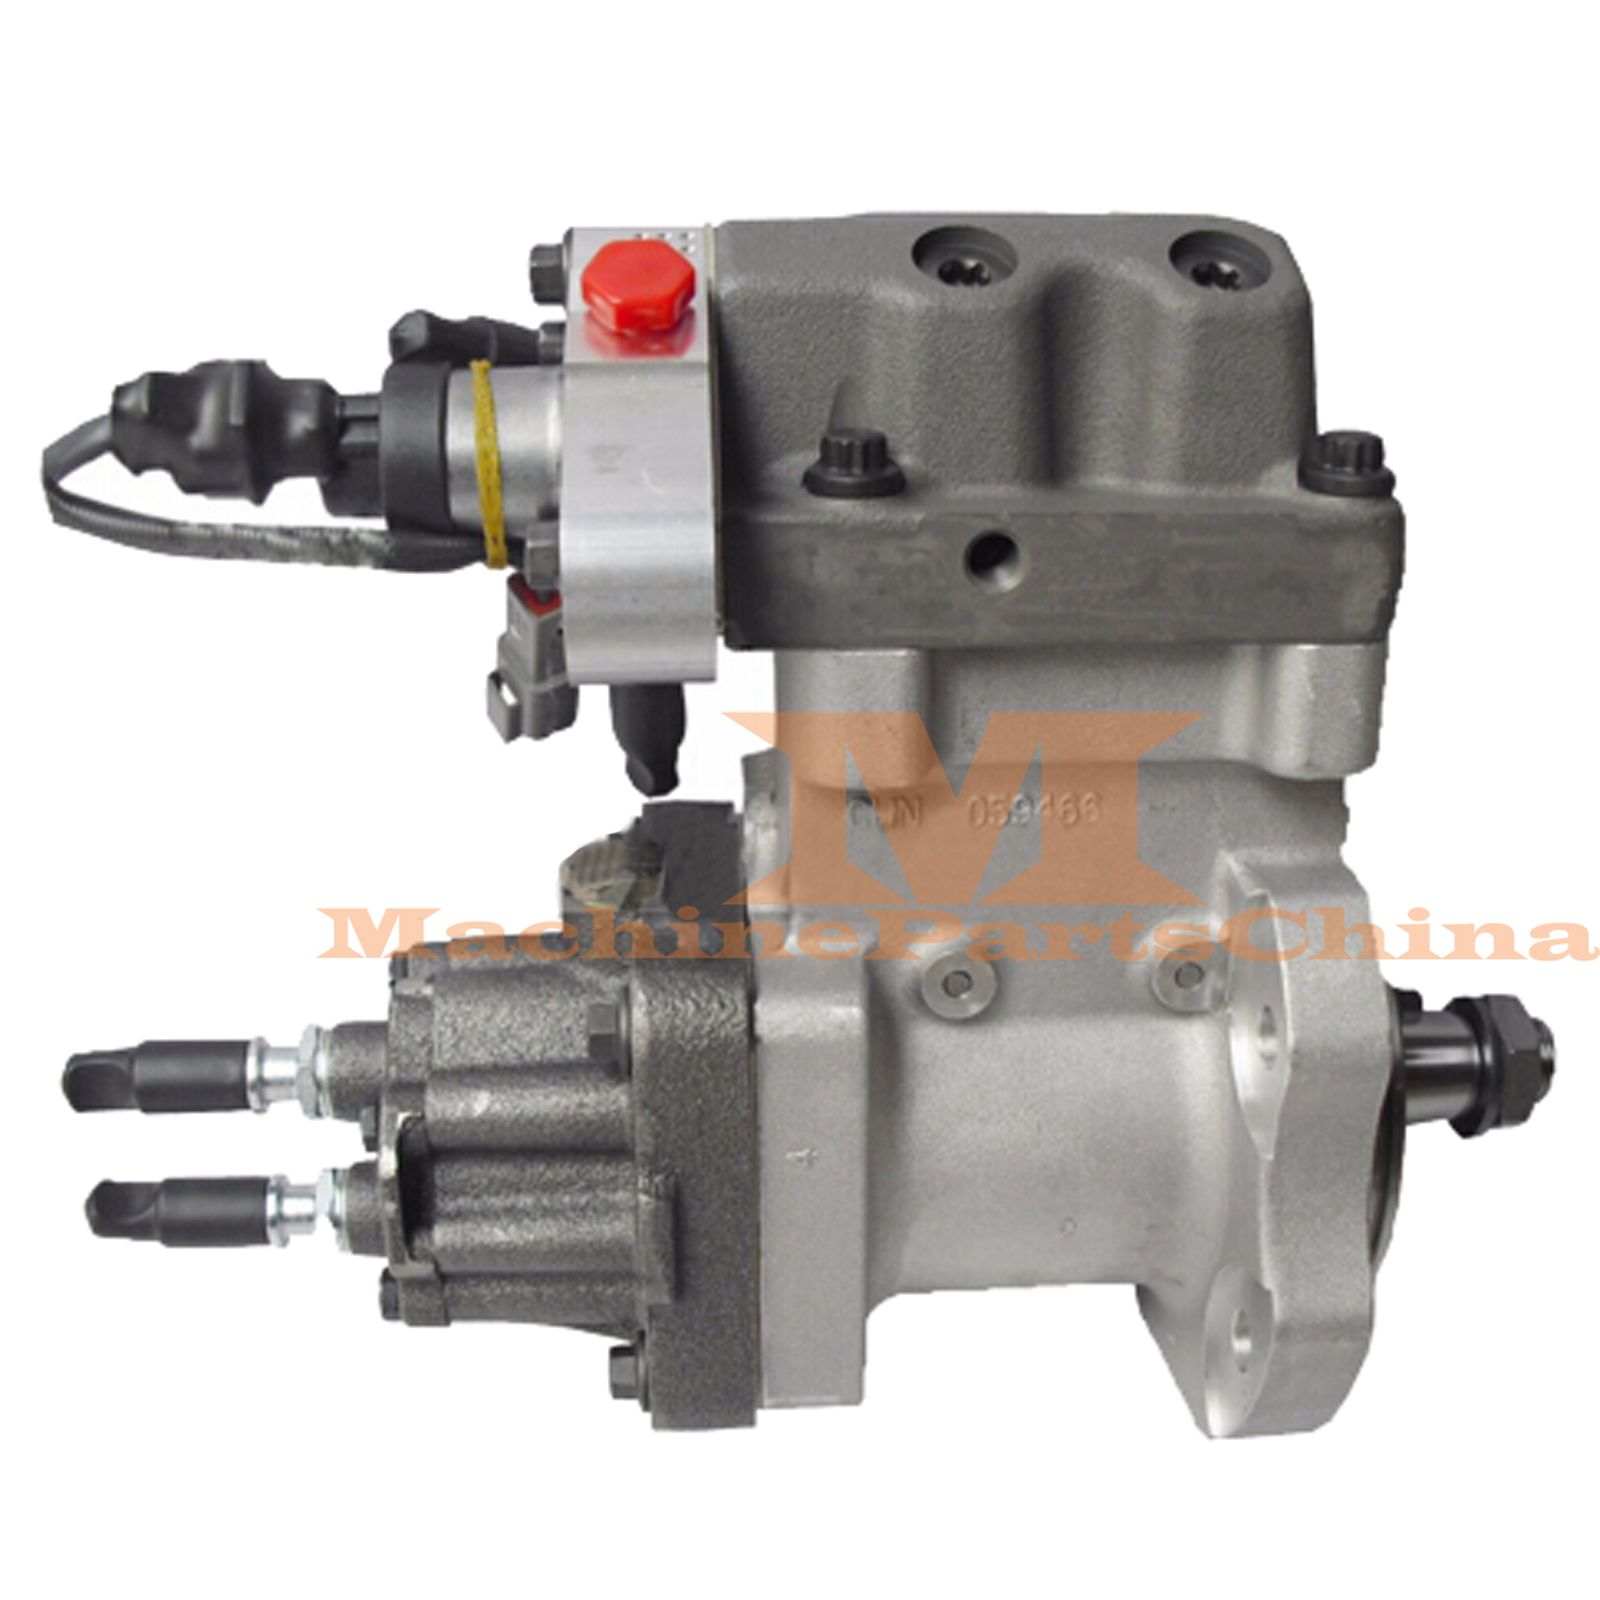 Details about 2897500 Fuel Injection Pump For Cummins ISC QSC8 3 ISLe QSL9  Engine